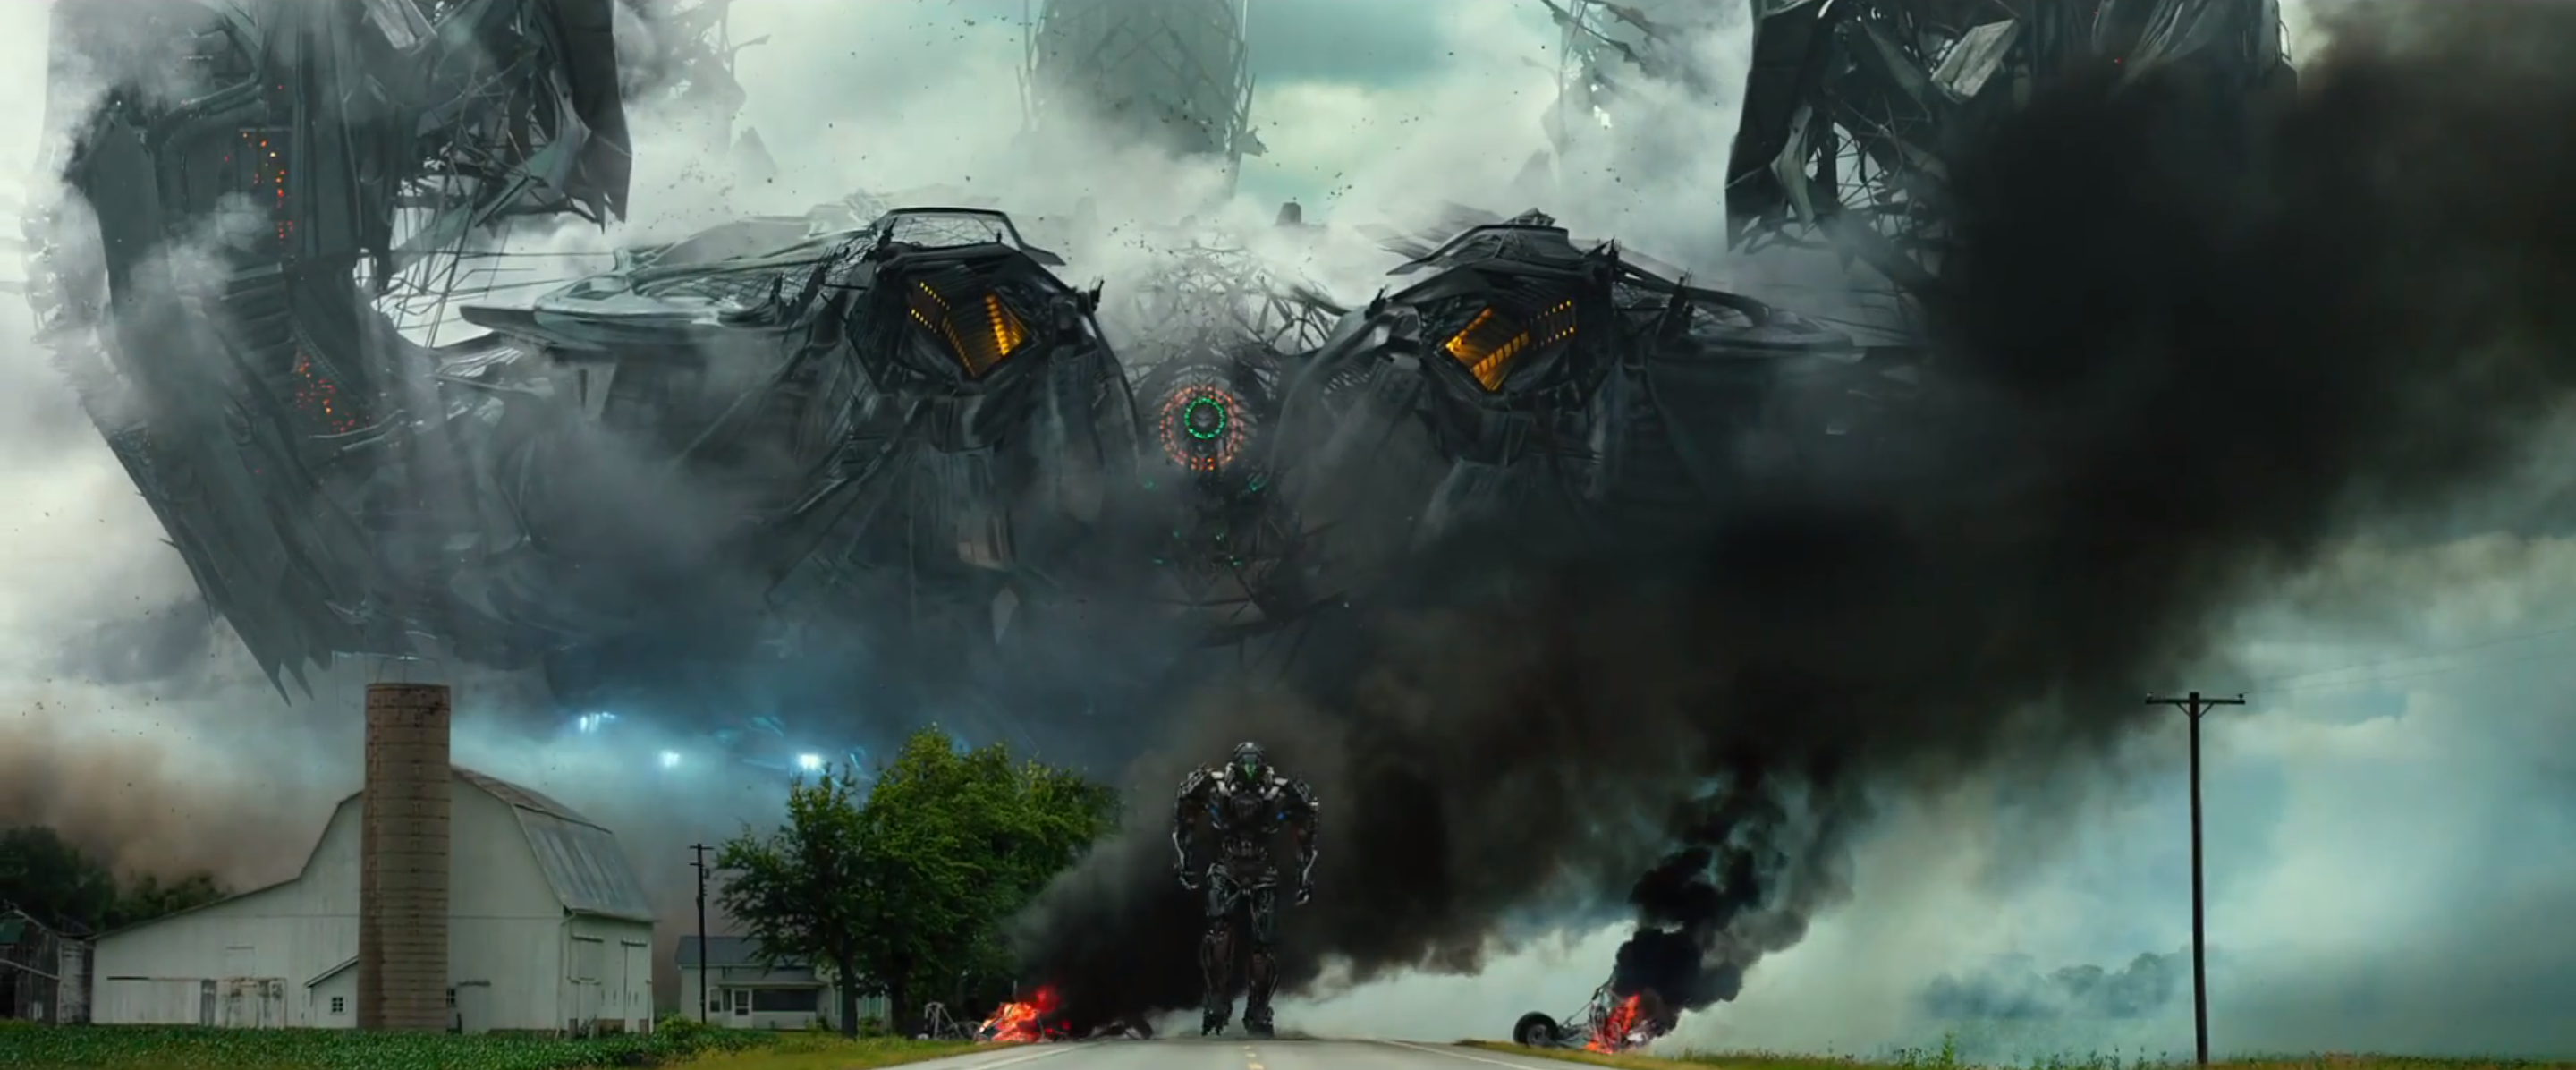 transformers 4: age of extinction trailer – the sequel we've been